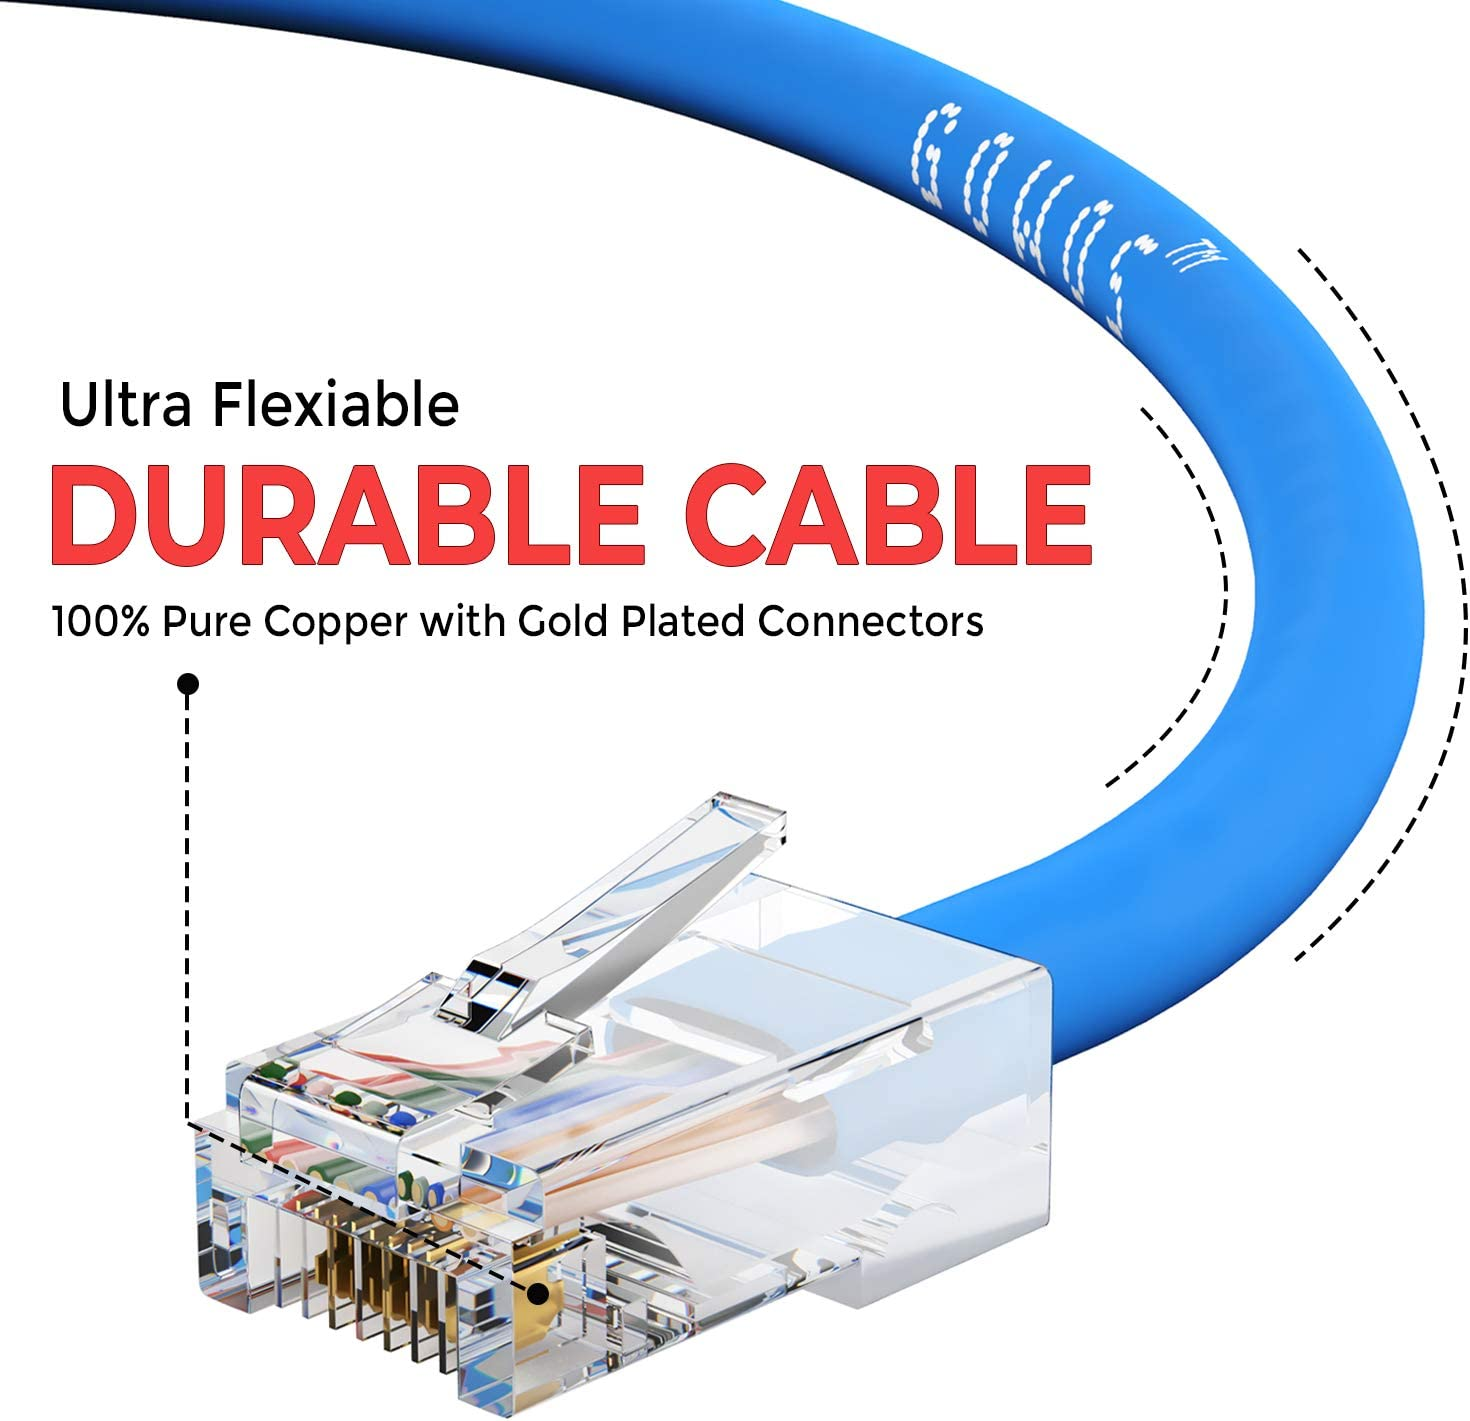 1Gigabit//Sec High Speed LAN Internet//Patch Cable 24AWG Network Cable with Gold Plated RJ45 Non-Booted Connector GOWOS Cat5e Ethernet Cable 350MHz 35 Feet - Blue